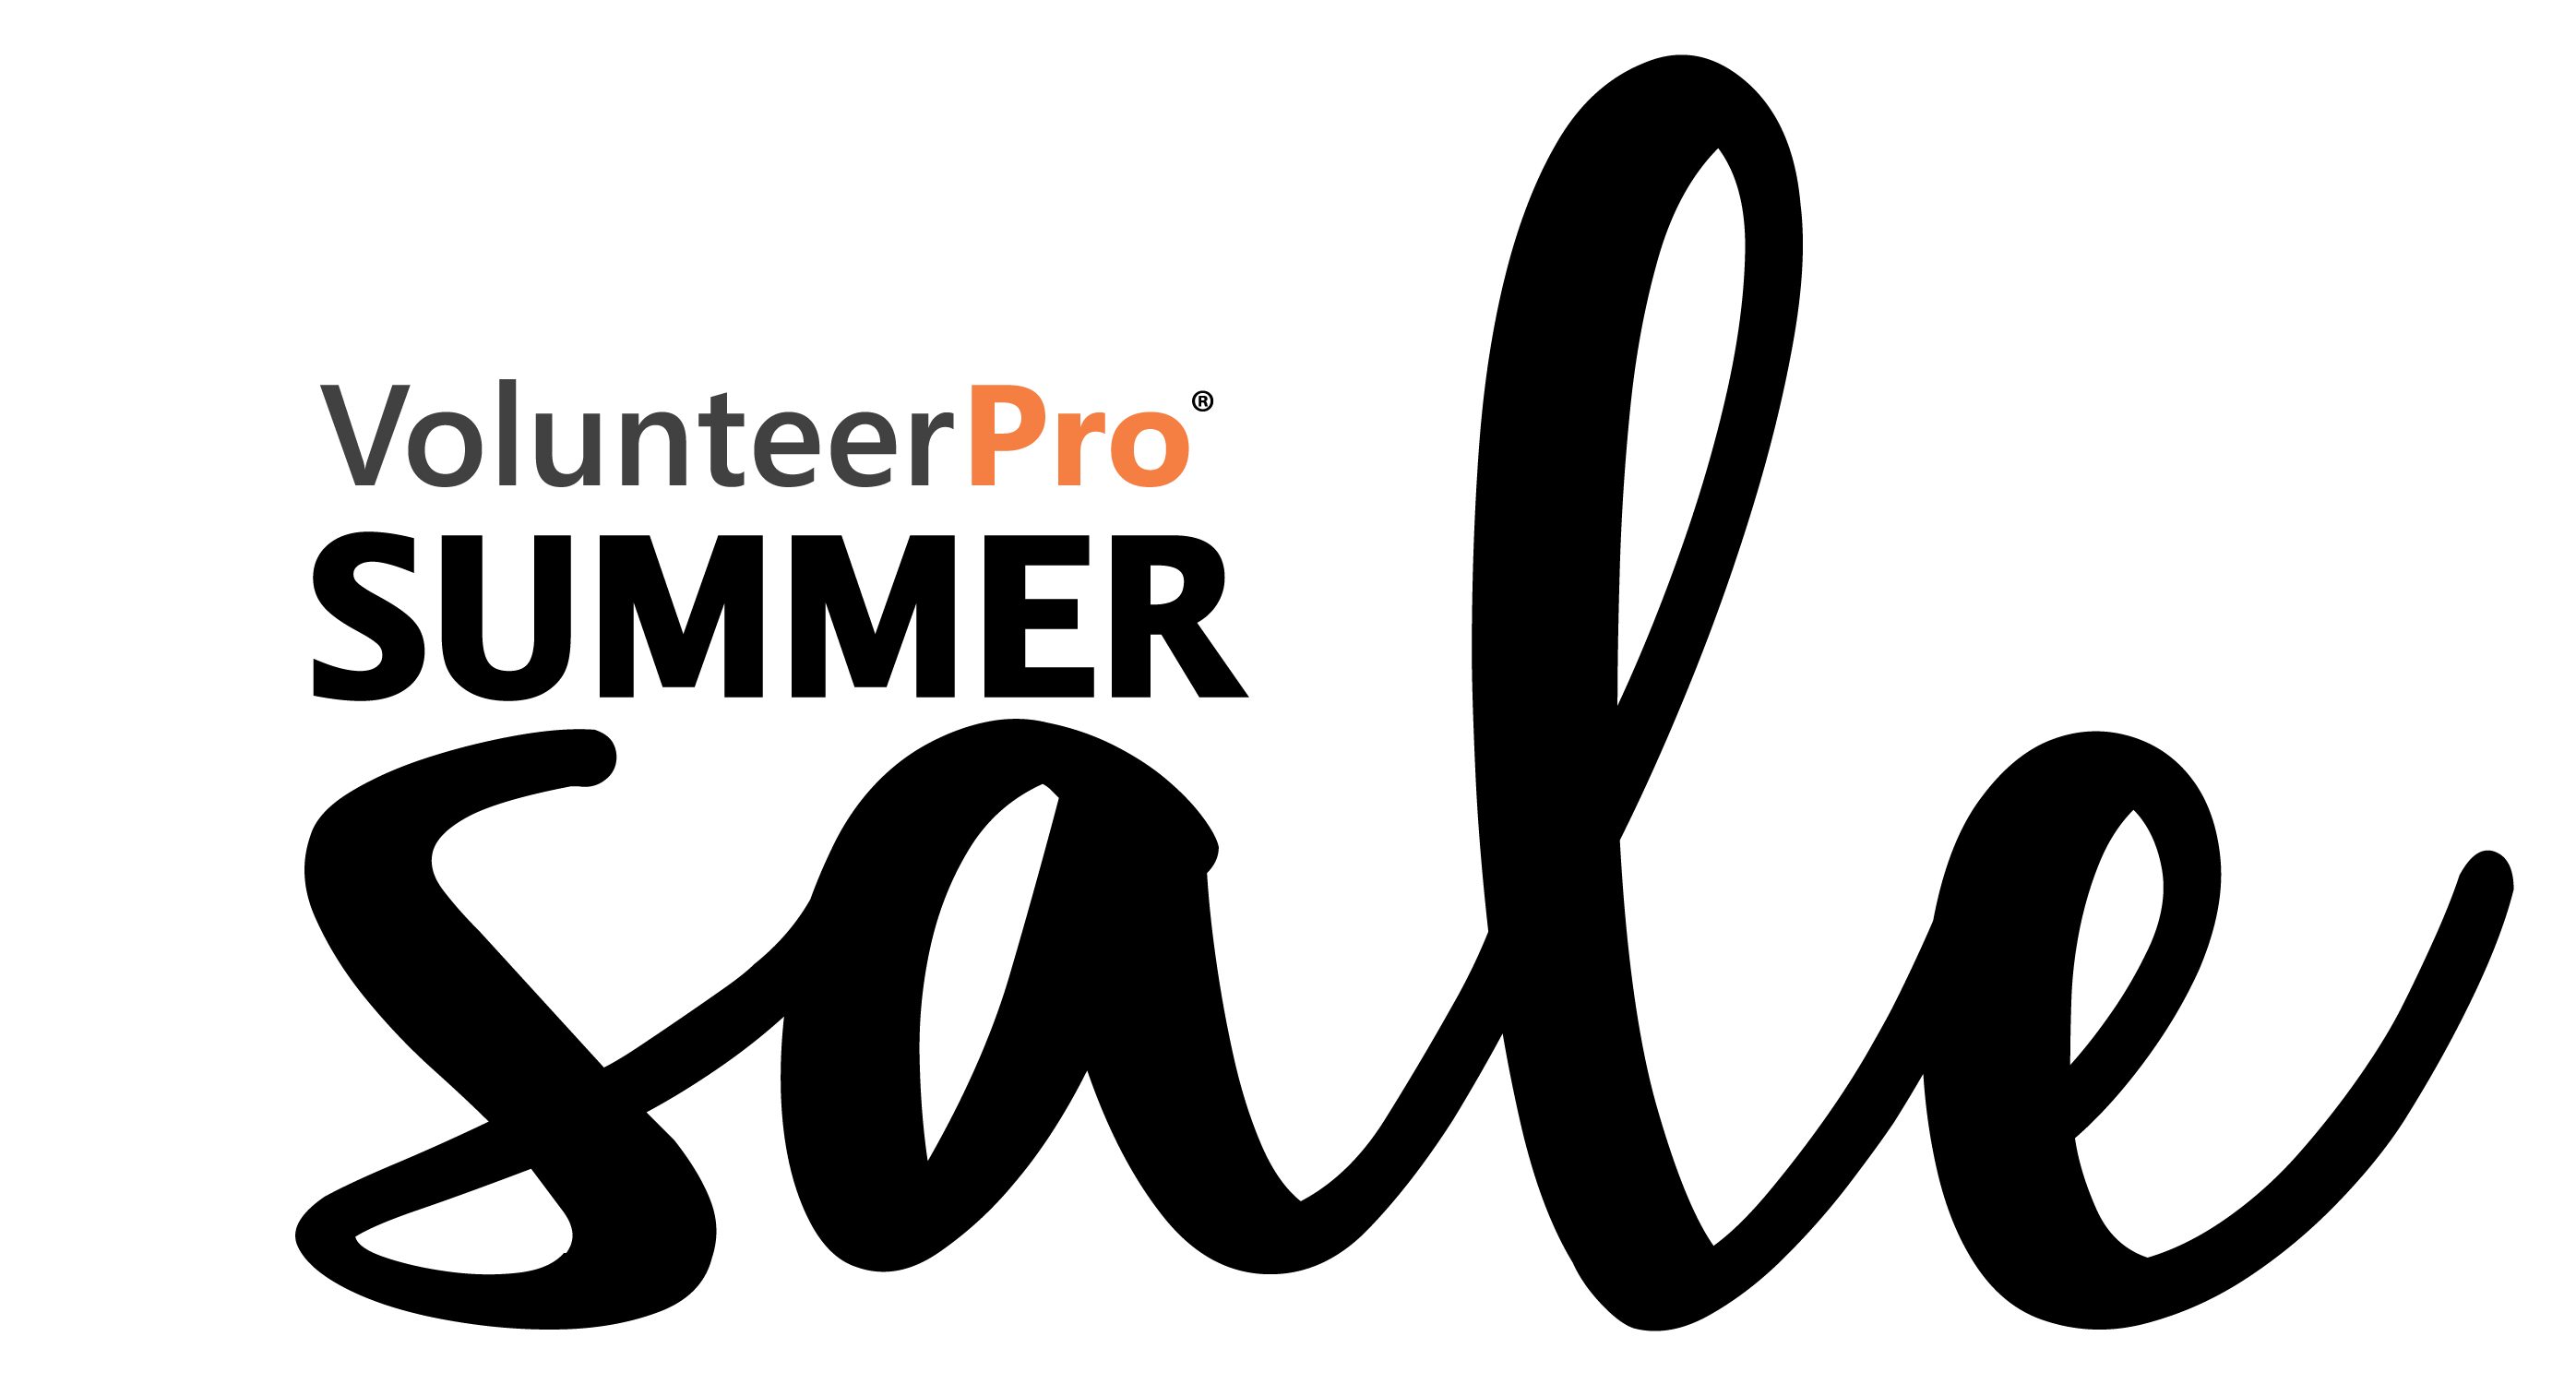 volunteerpro membership sale